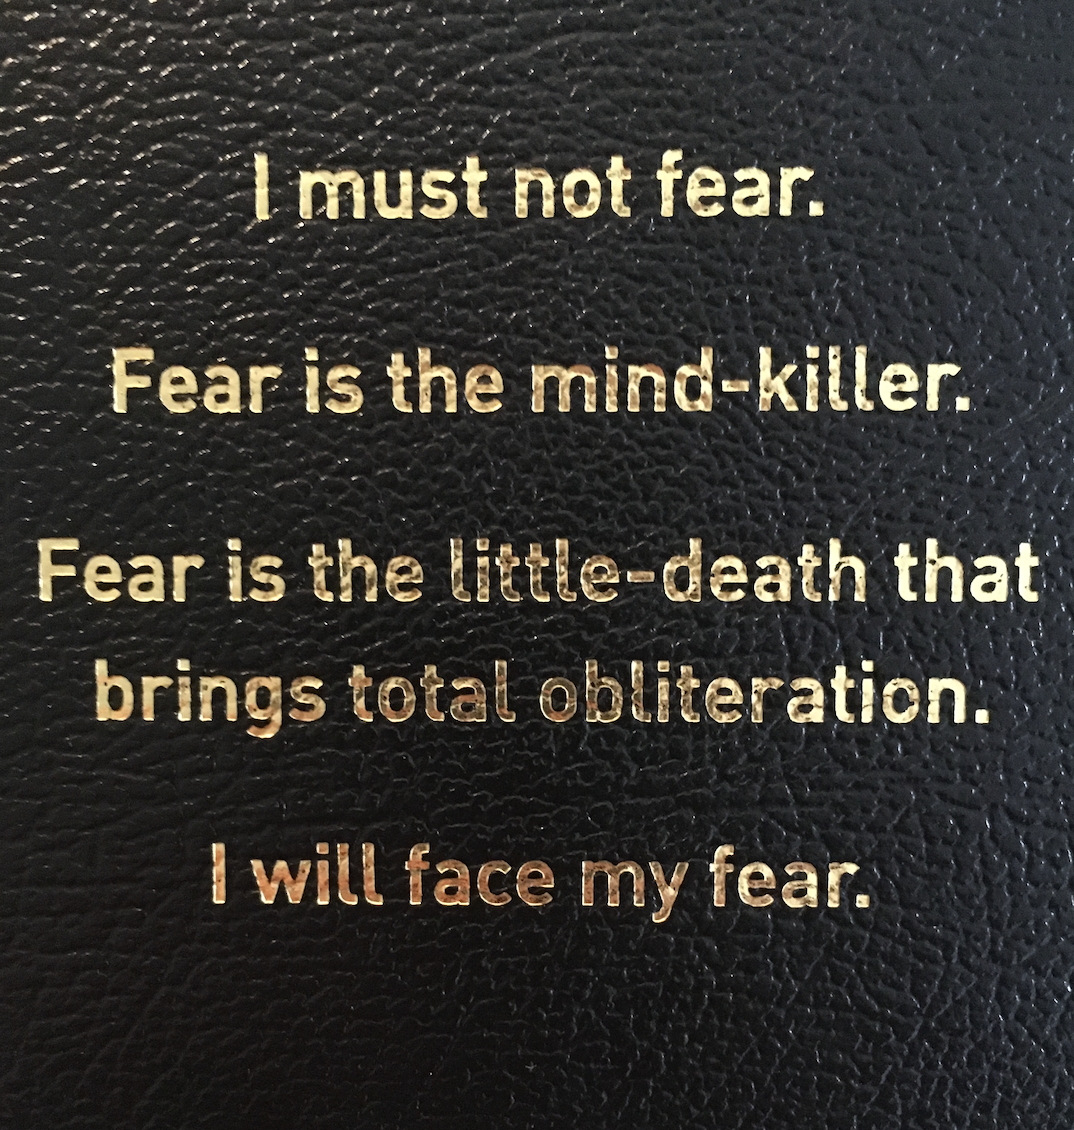 [Image] Fear is the mind-killer.